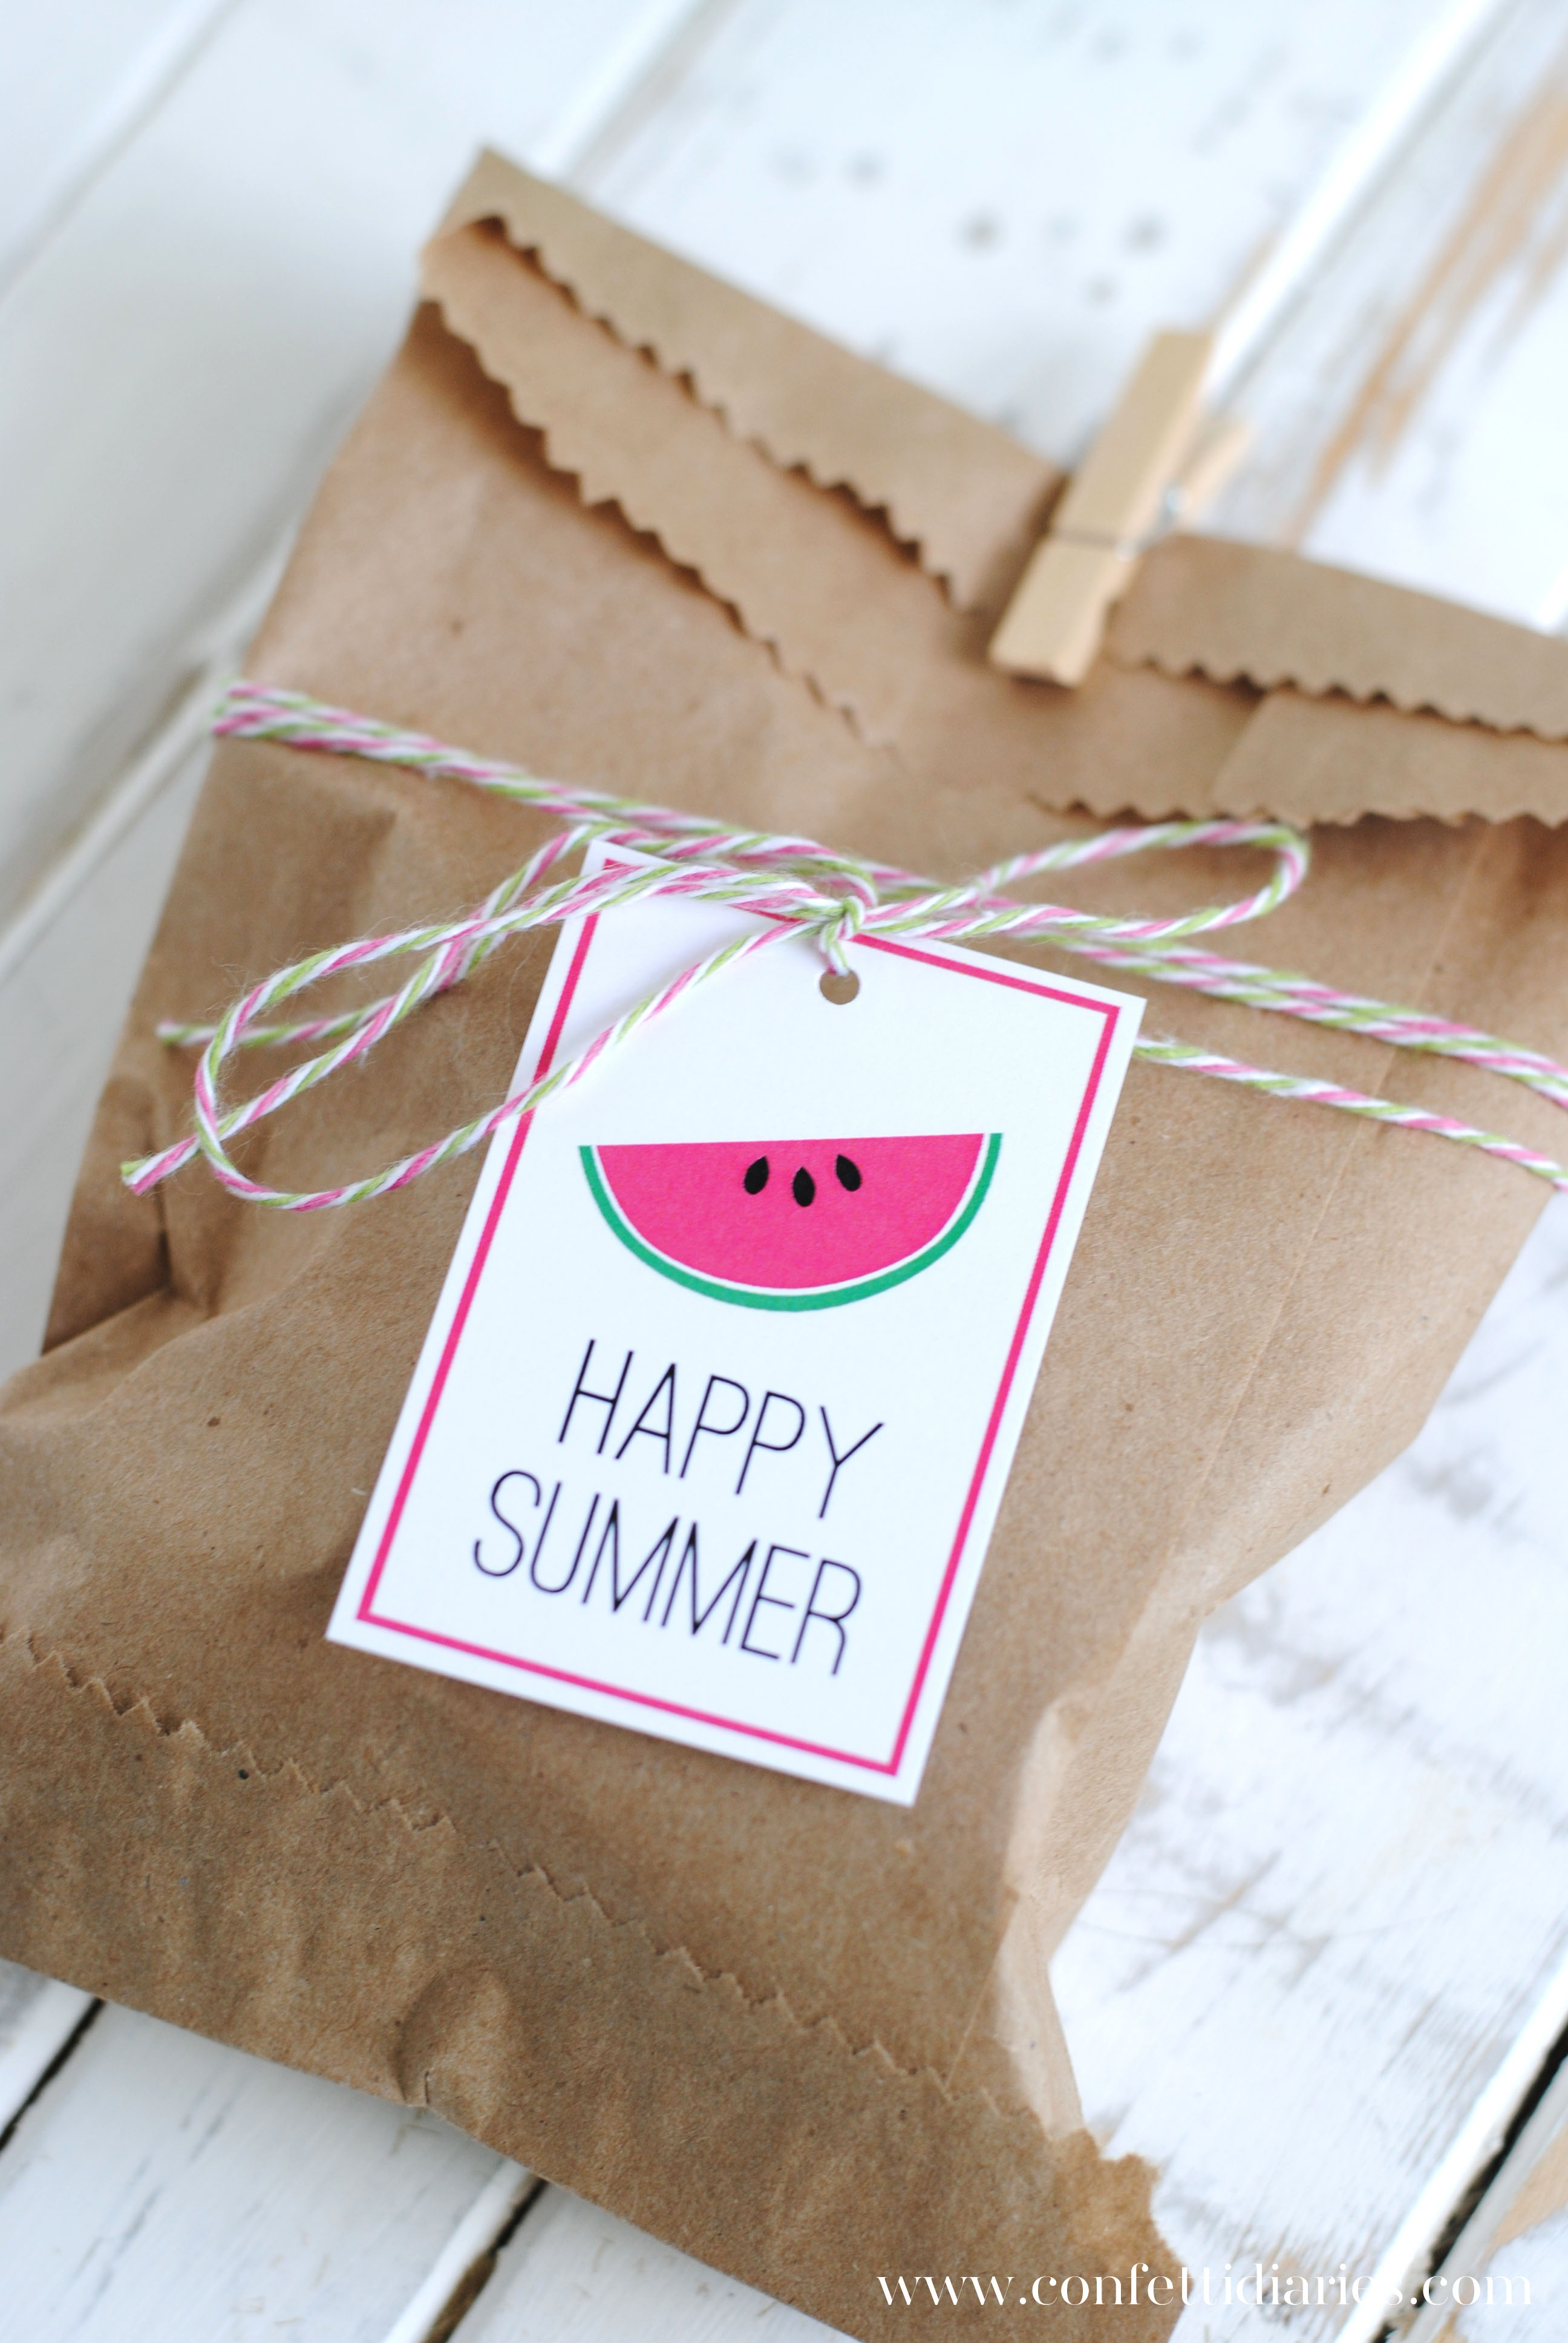 Free Printable Happy Summer Gift Tags - Katarina's Paperie - Free Printable Goodie Bag Tags